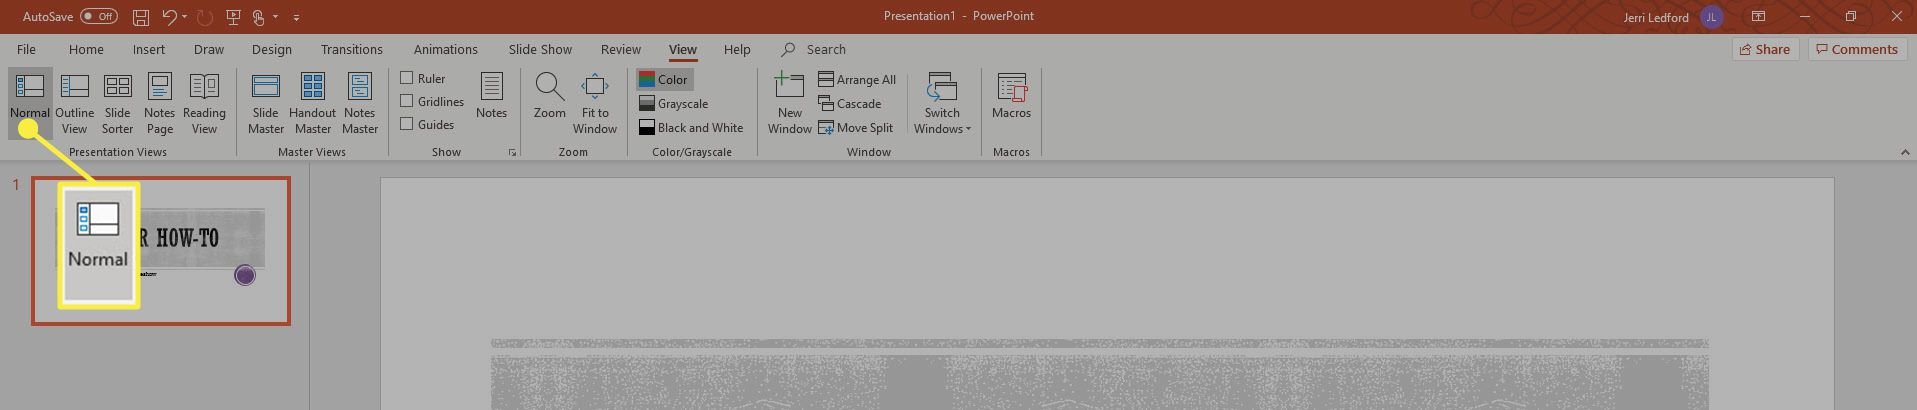 The Normal View in PowerPoint.